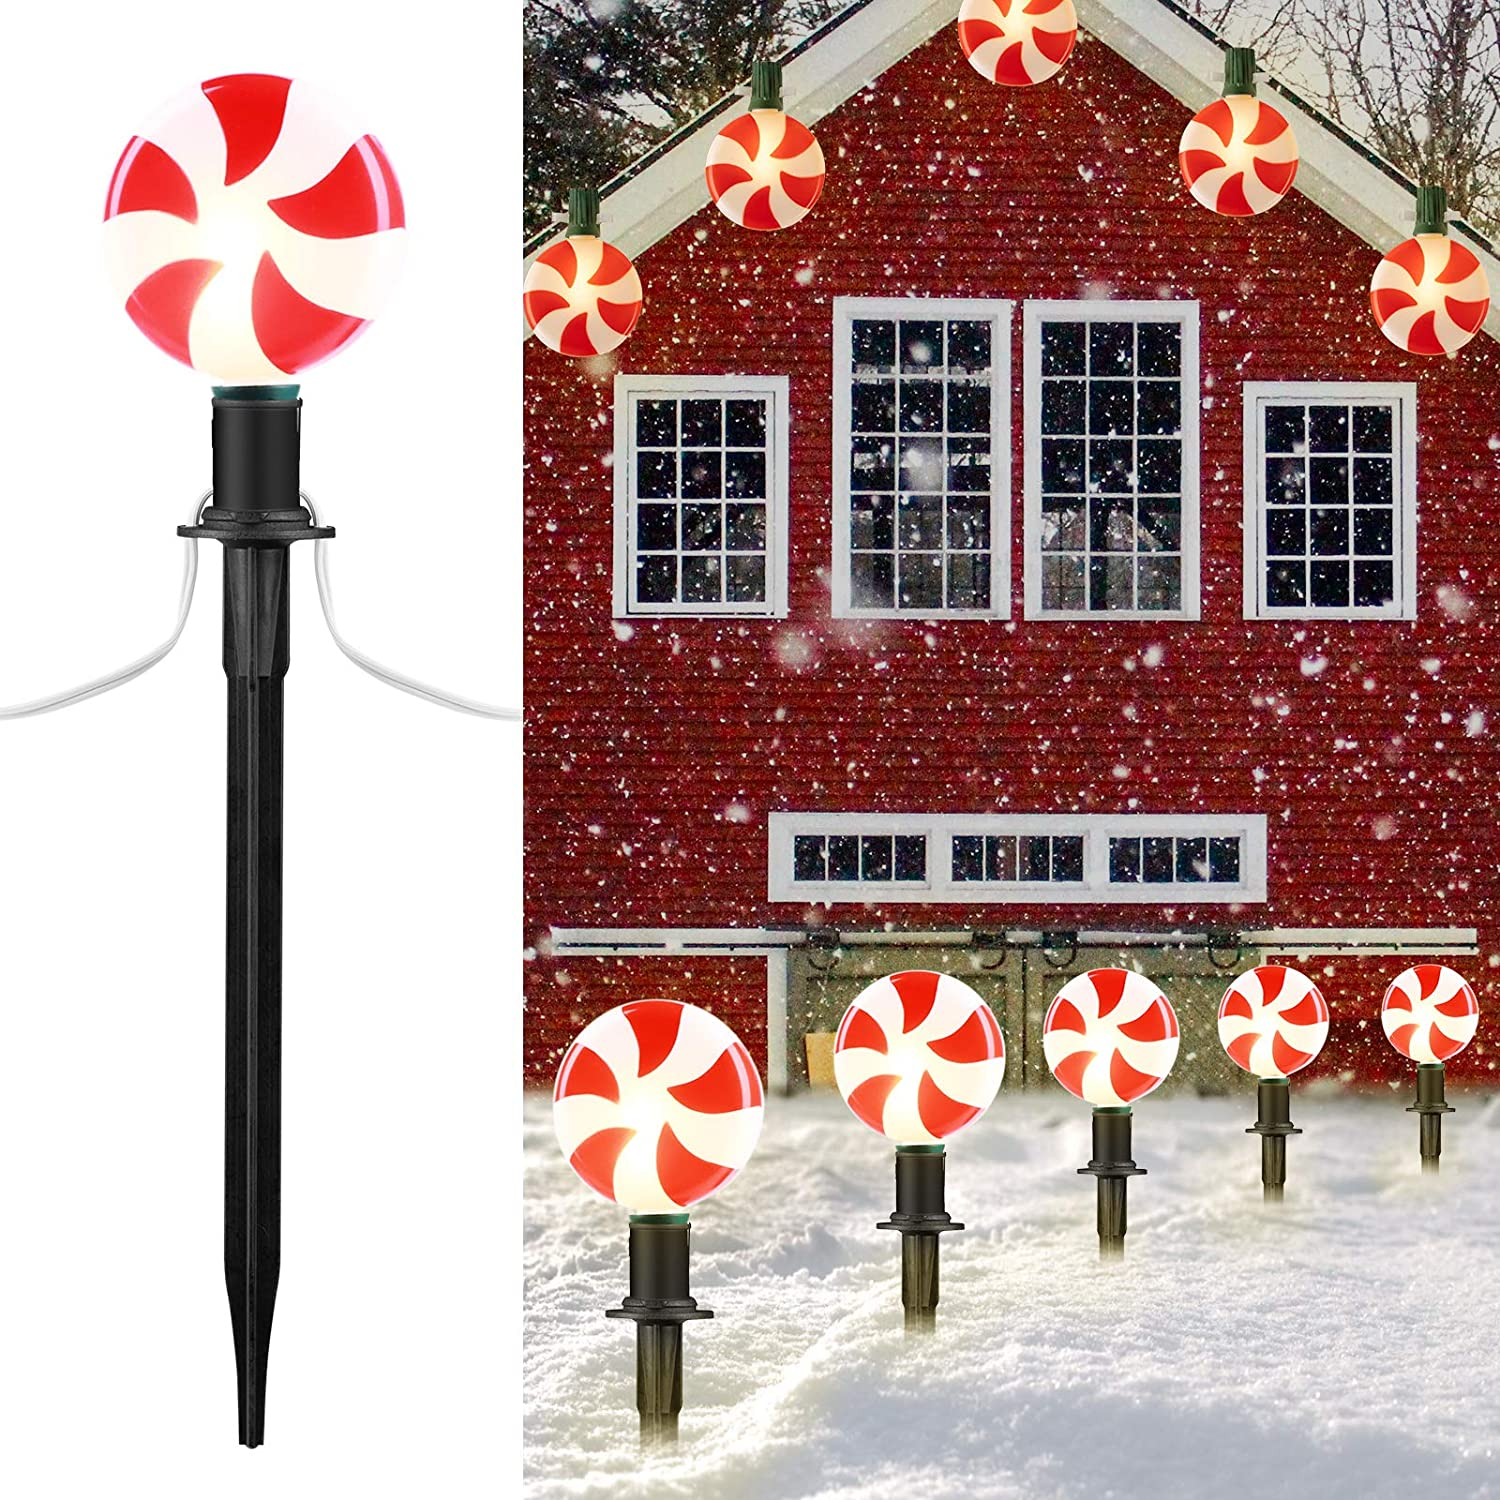 Outdoor Lollipop Christmas Pathway String Lights, 7.16 Feet Wire 10 Inches Stake, Clips, Pluggable, Hangable, Waterproof, Connectable Holiday Decor Light for Gutter Roof, 2 Pack,10 Lights, Warm White